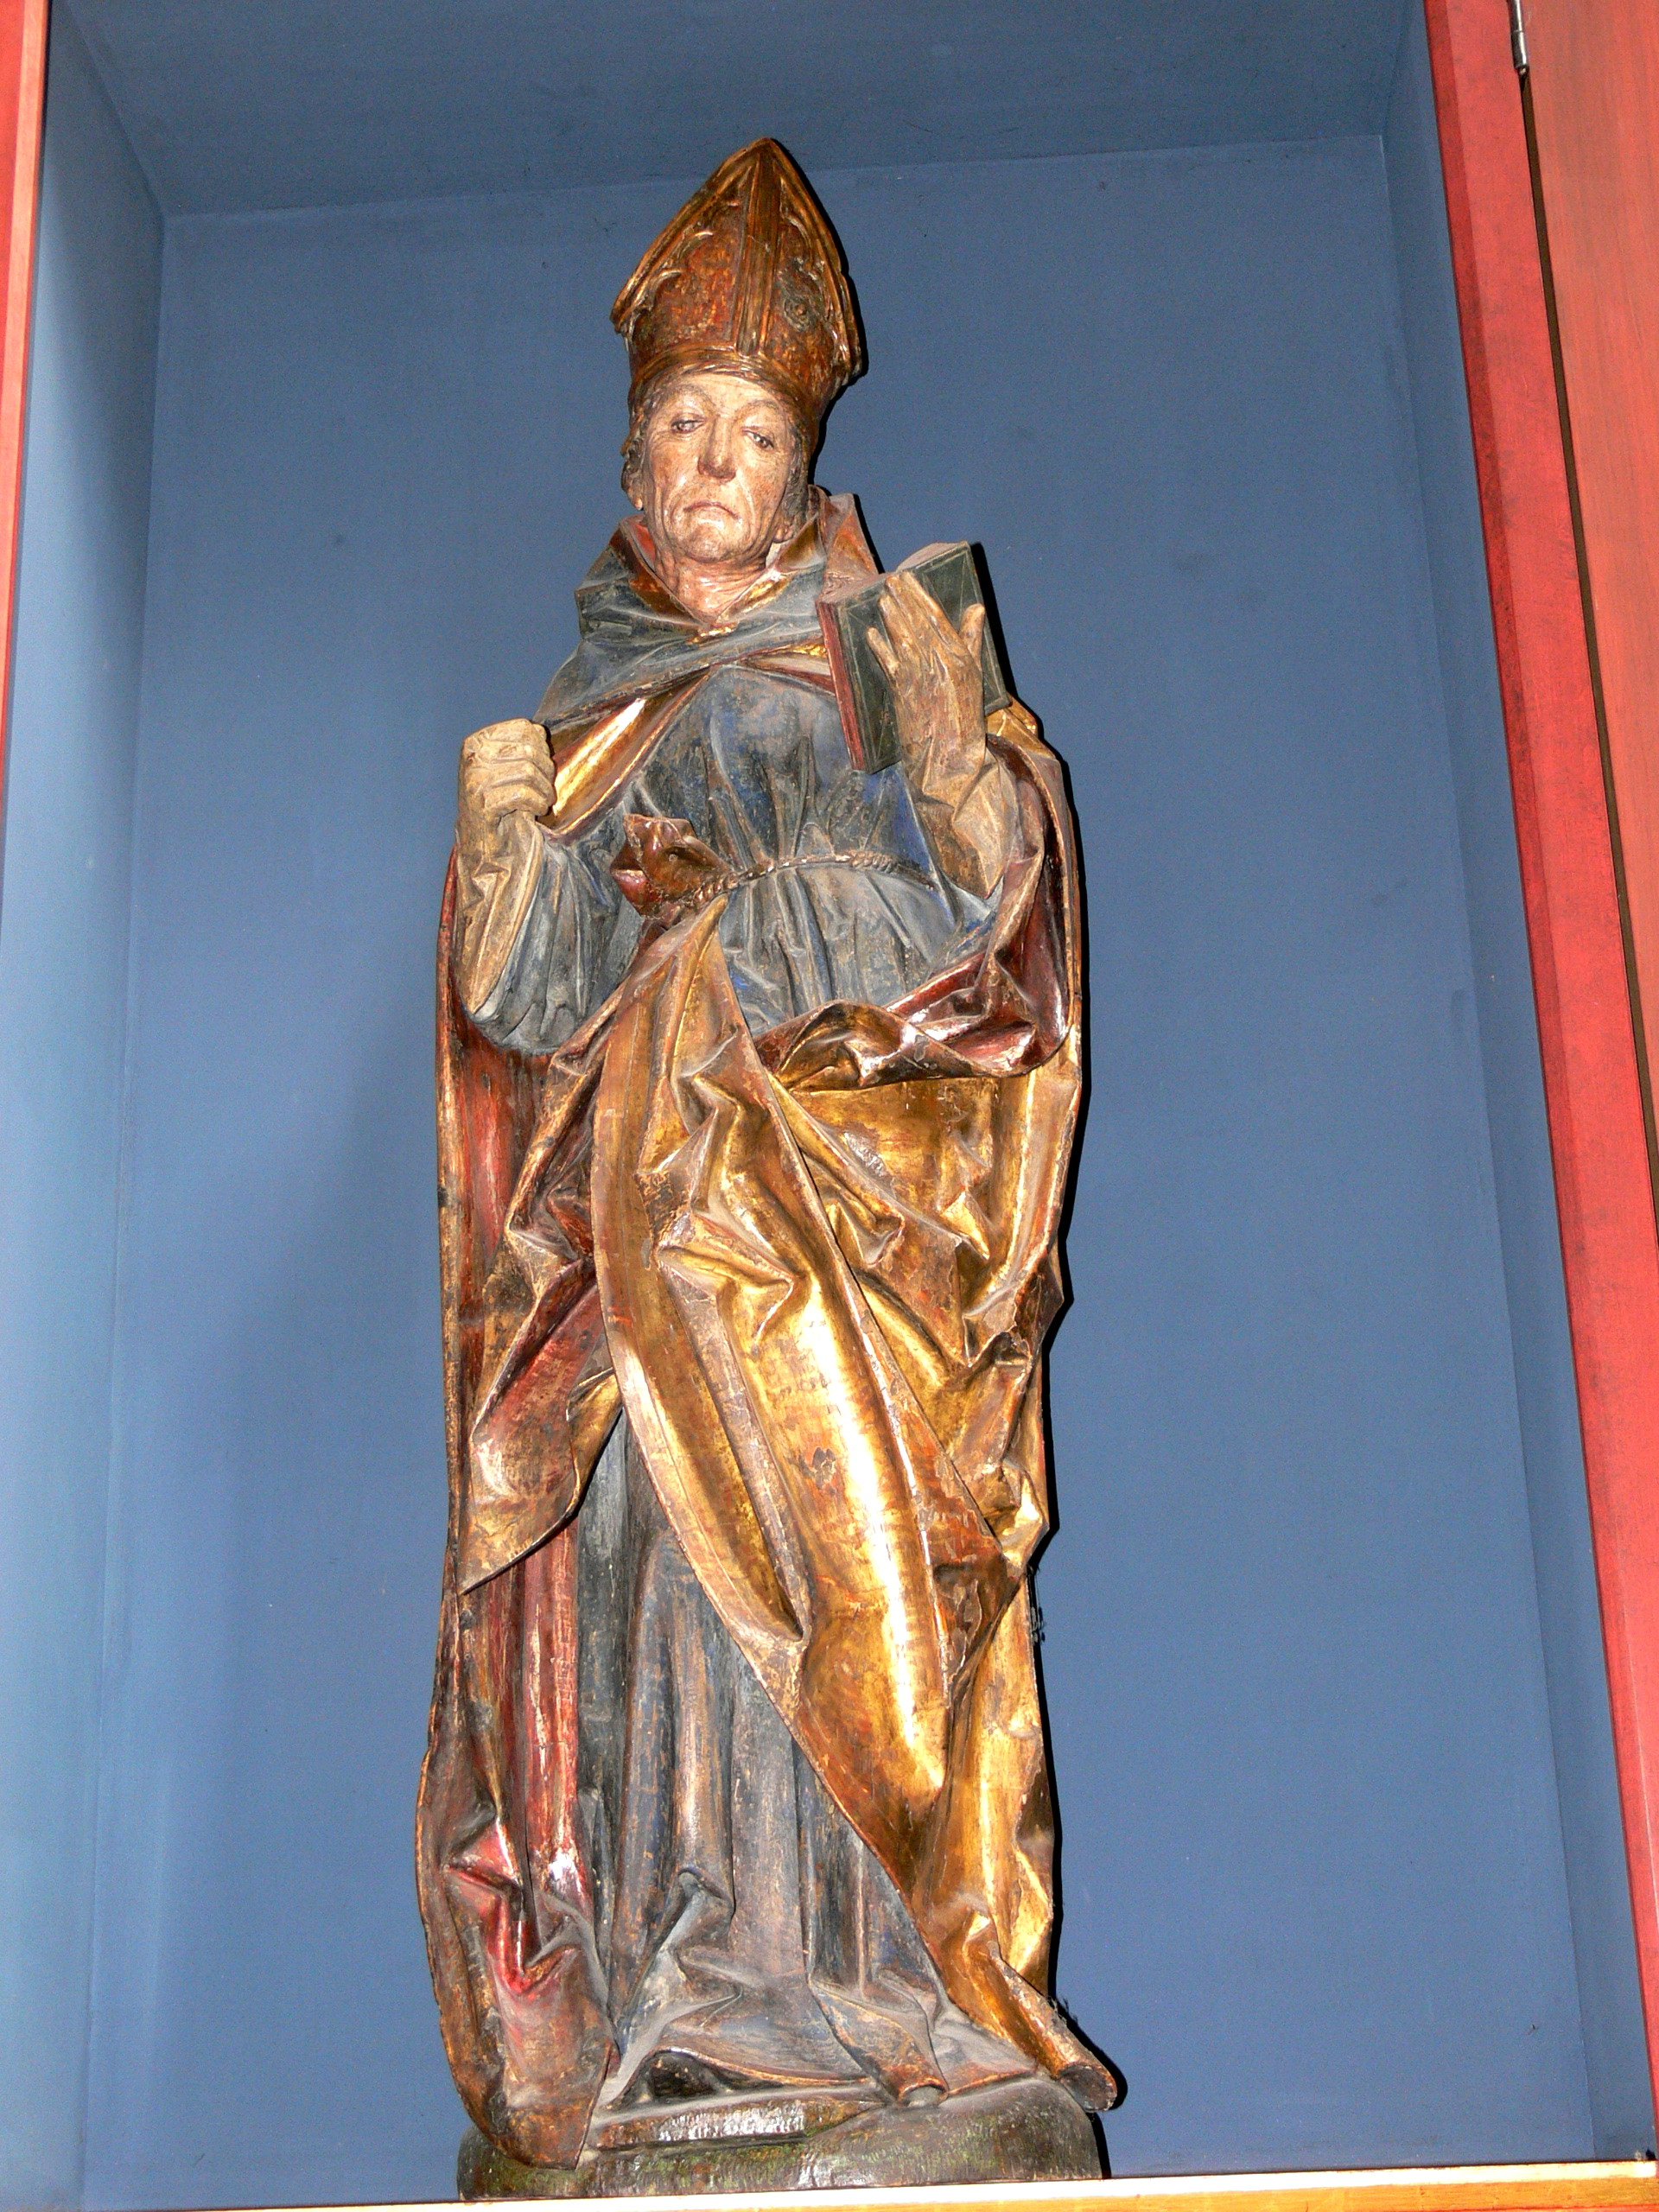 https://upload.wikimedia.org/wikipedia/commons/9/92/St.Jakob_-_Altar_St.Ludwig_von_Toulouse_01.jpg